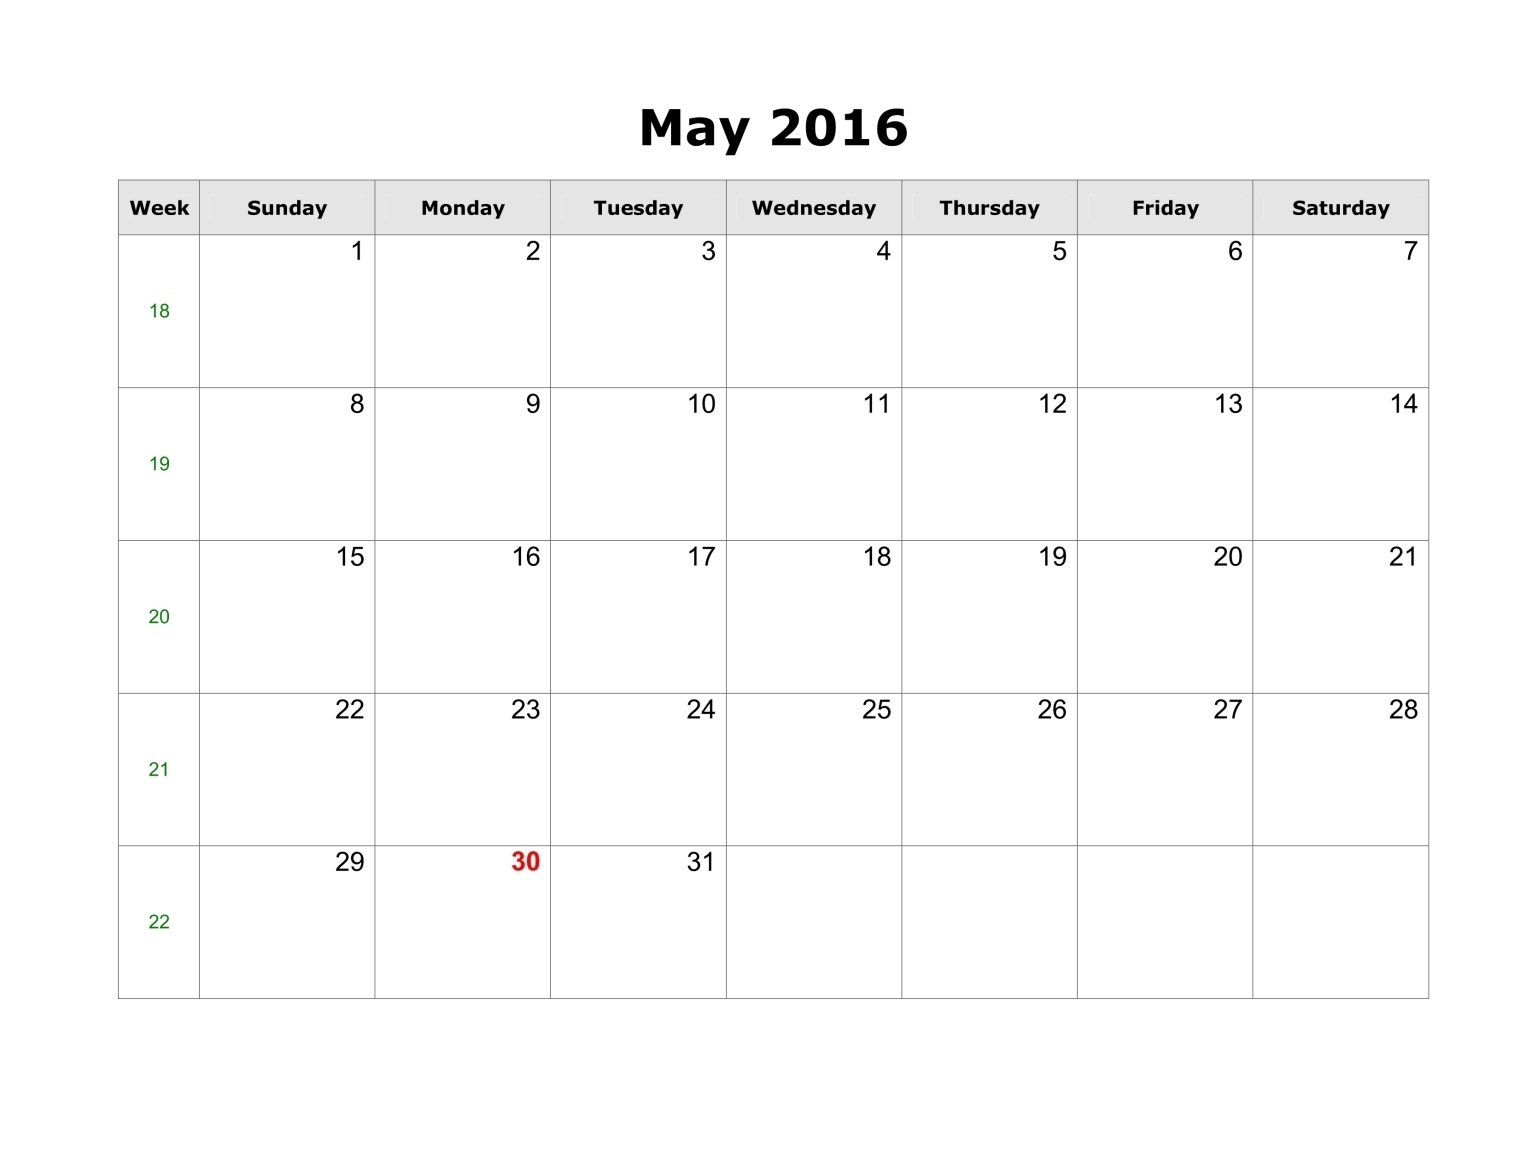 may 2016 printable calendar pdf may 2016 printable calendar word may 2016 printable calendar